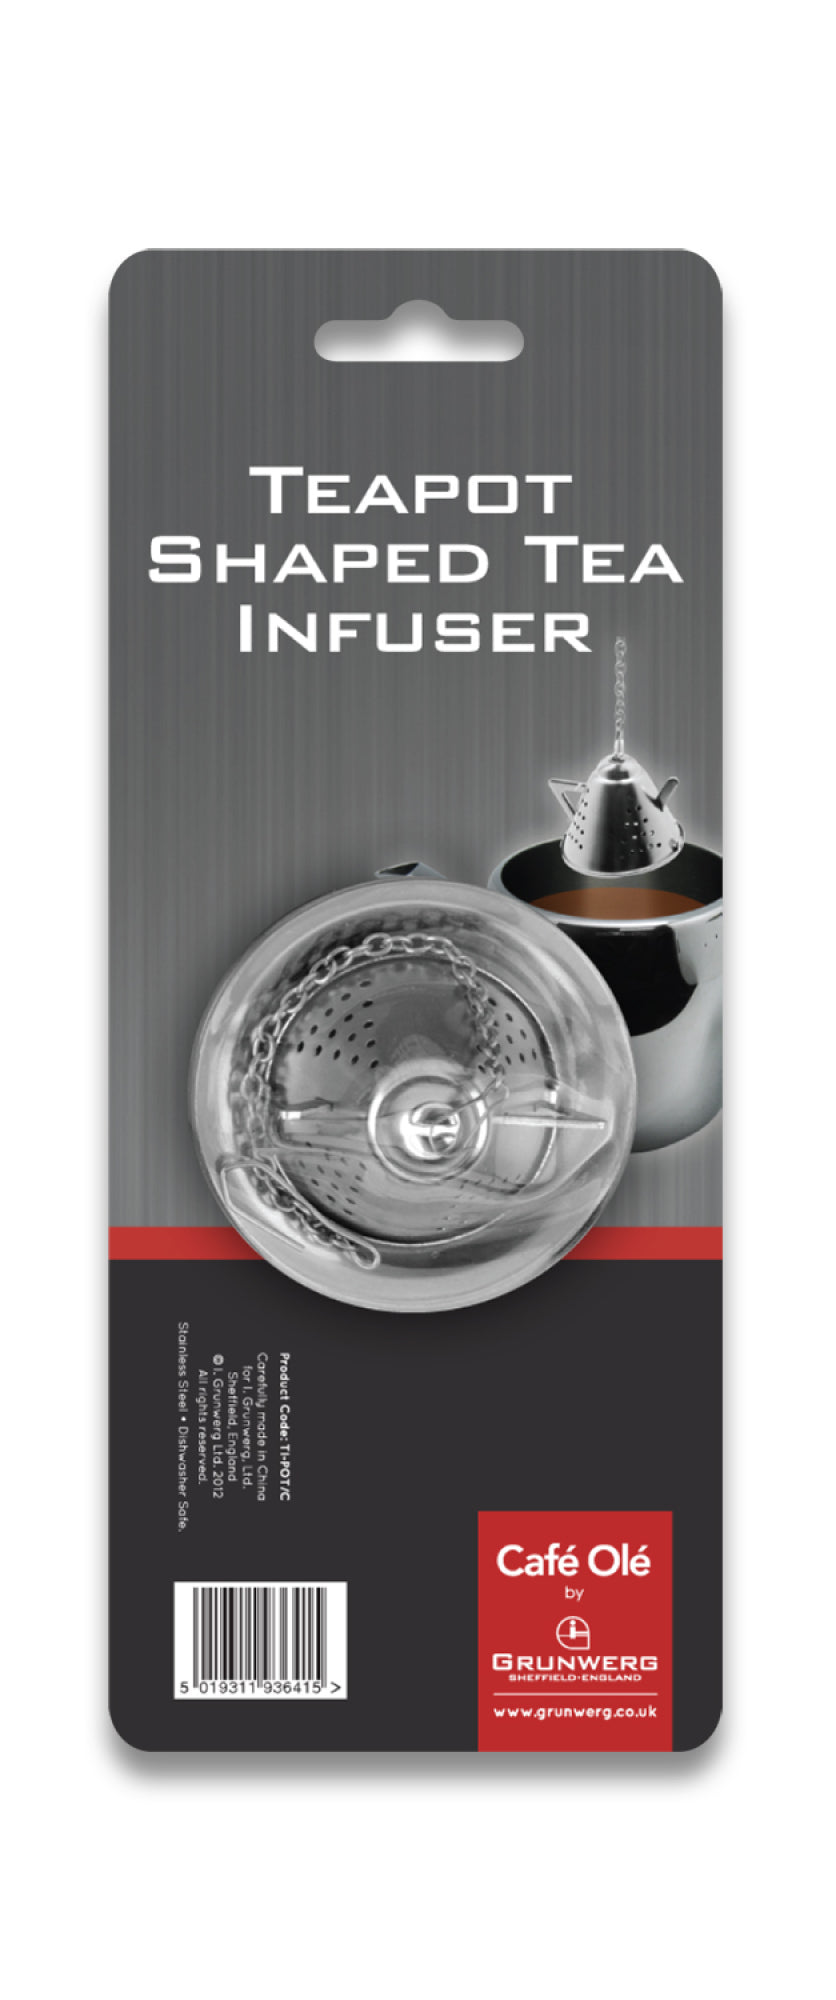 Teapot Loose Leaf Tea Infuser